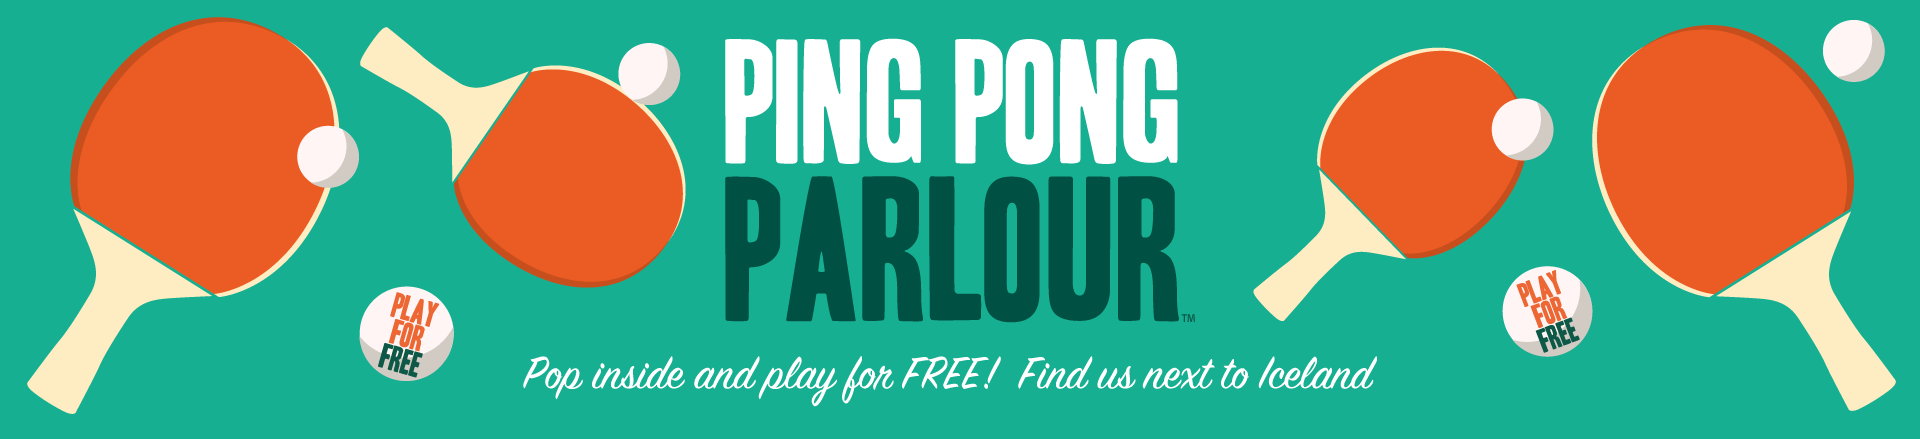 Ping Pong Parlour banner